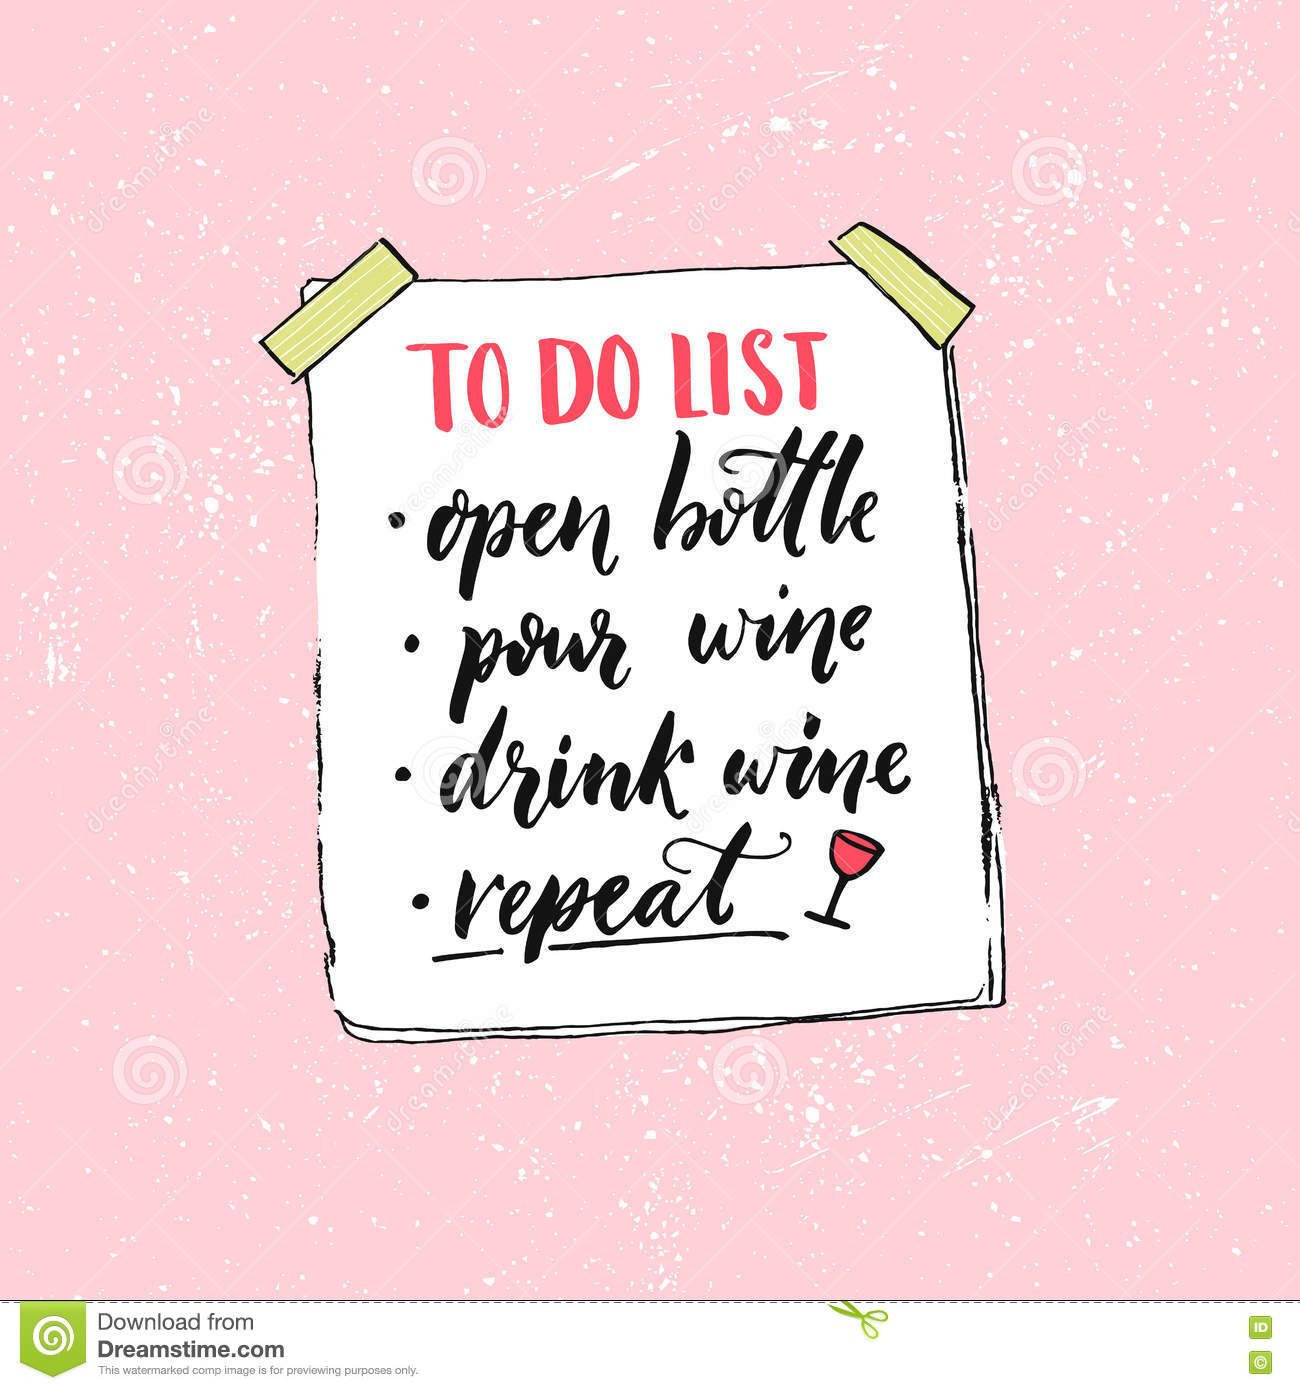 to do list open bottle pour wine drink and repeat funny quote